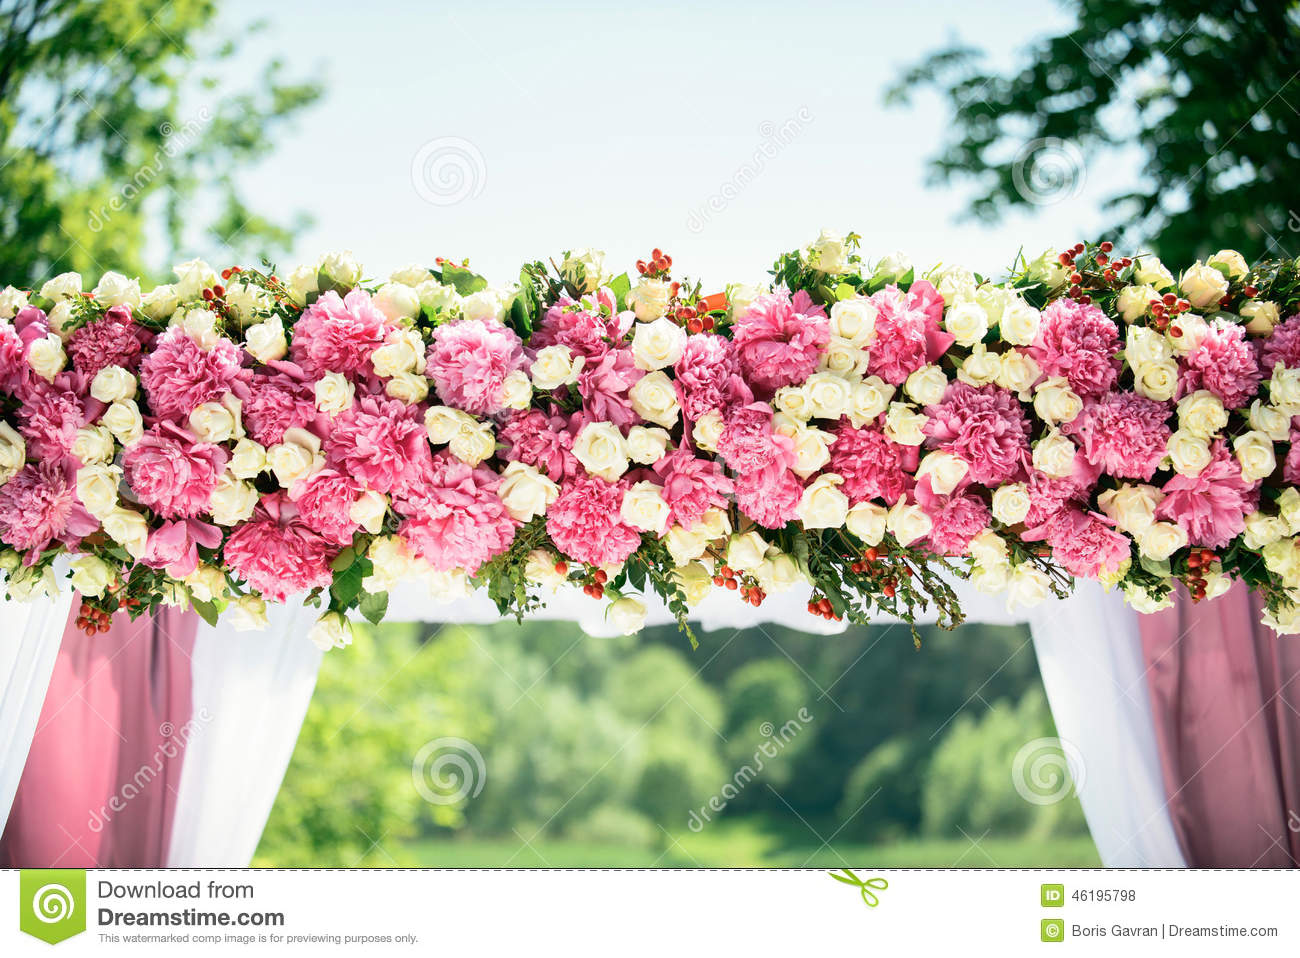 Part of wedding arch stock photo. Image of flowers, pink - 46195798